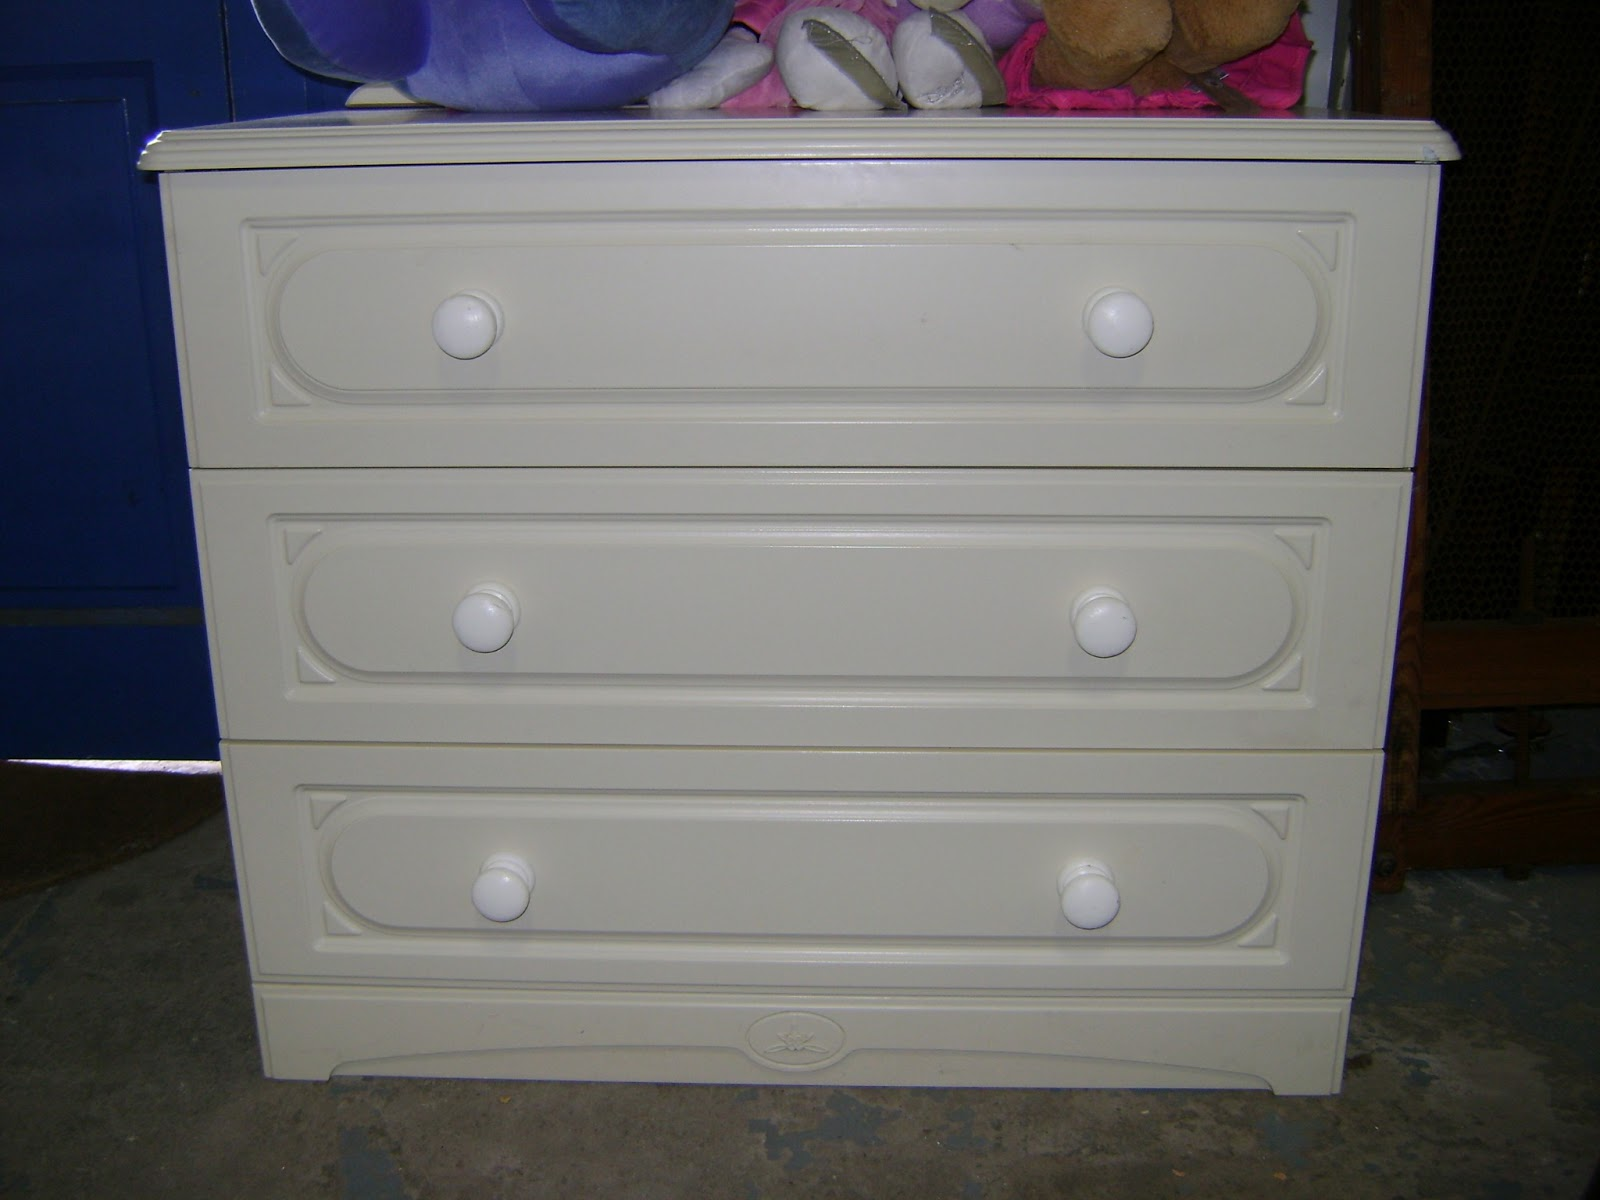 New Stock Update: 31st March 2013 Chest of Drawers, Teddy's, Baby